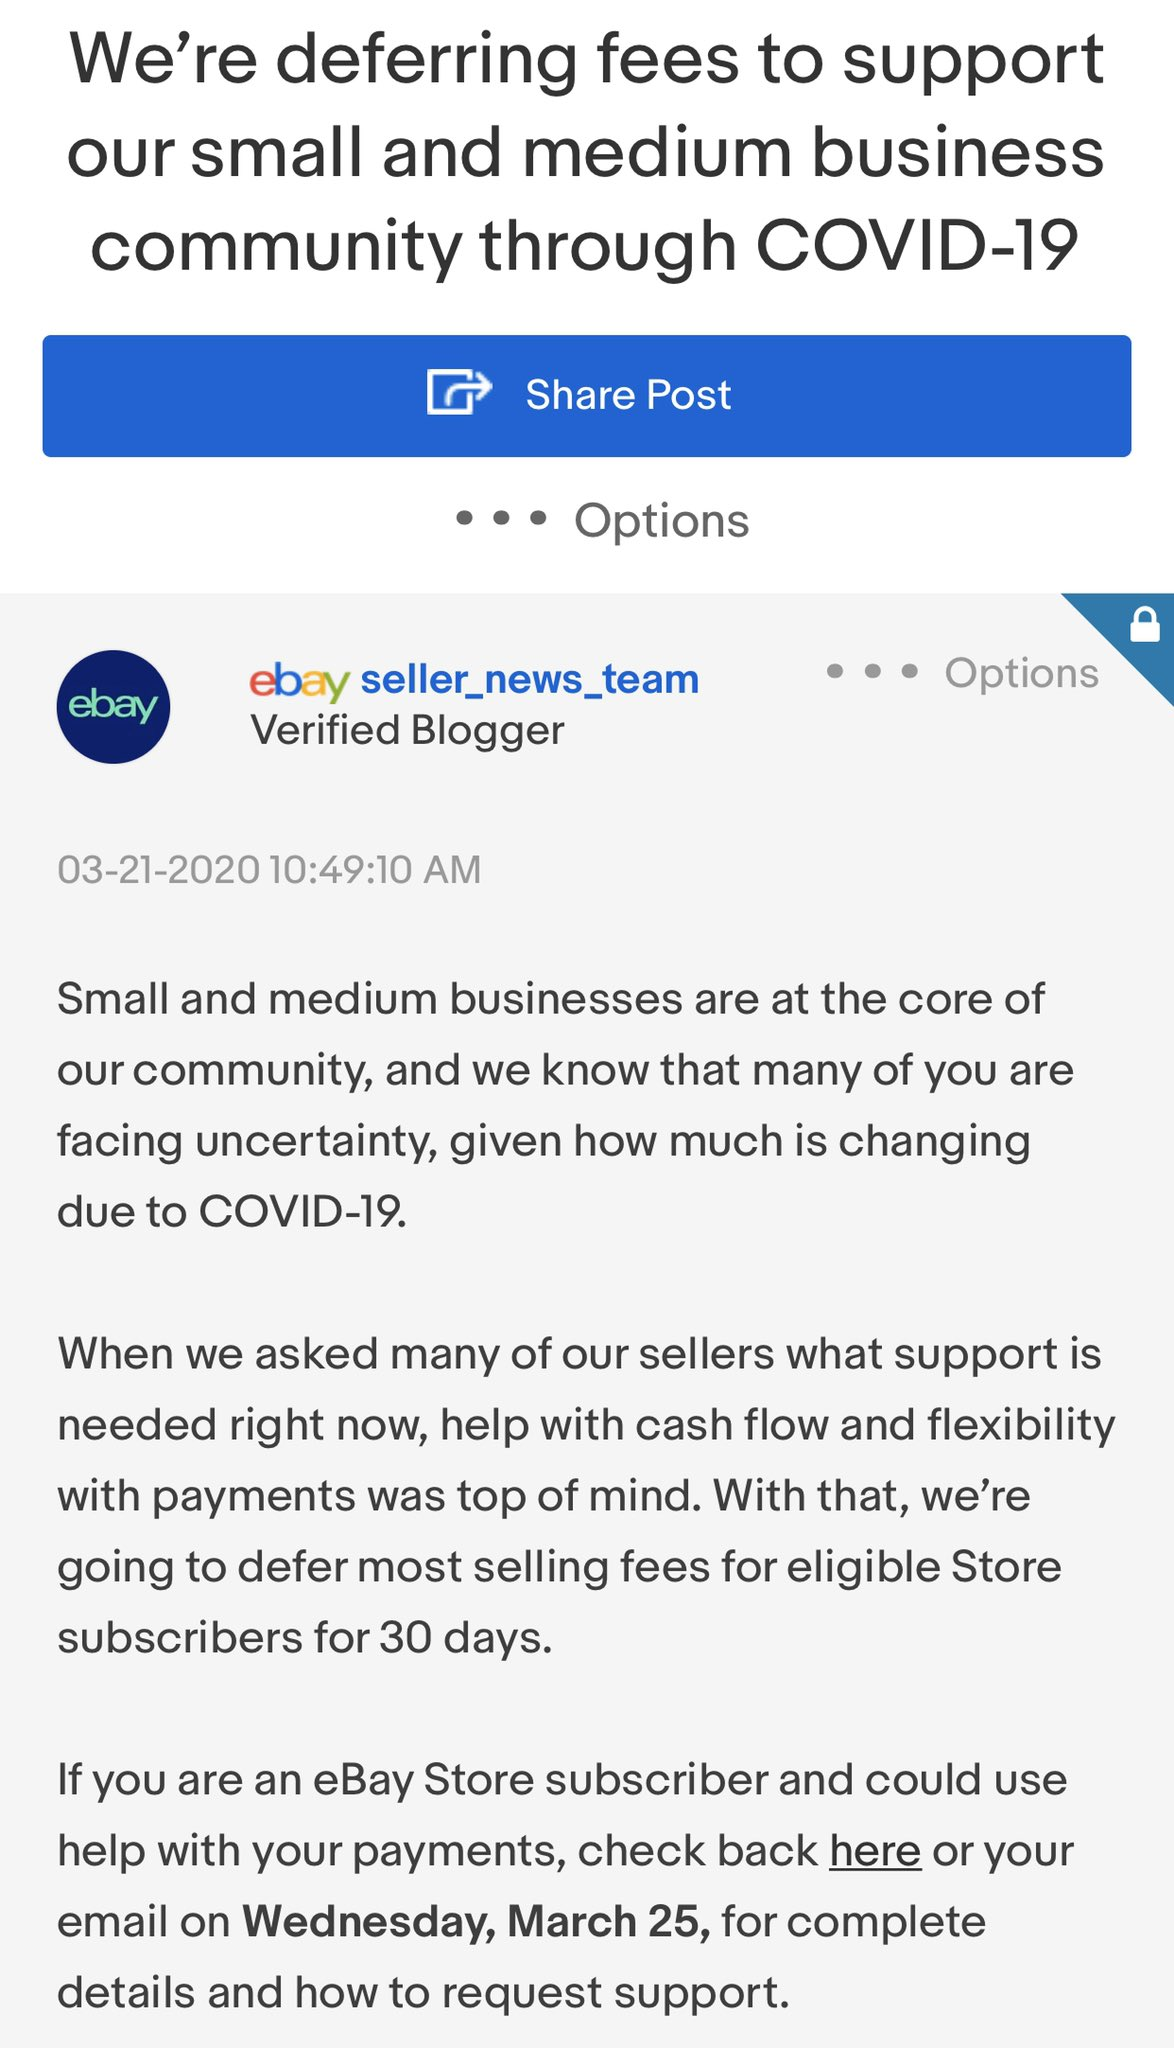 Sean Reilly On Twitter Big Announcement From Ebay Seller Fees Will Be Deferred For 30 Days If This Helps You Take Advantage Fliplife